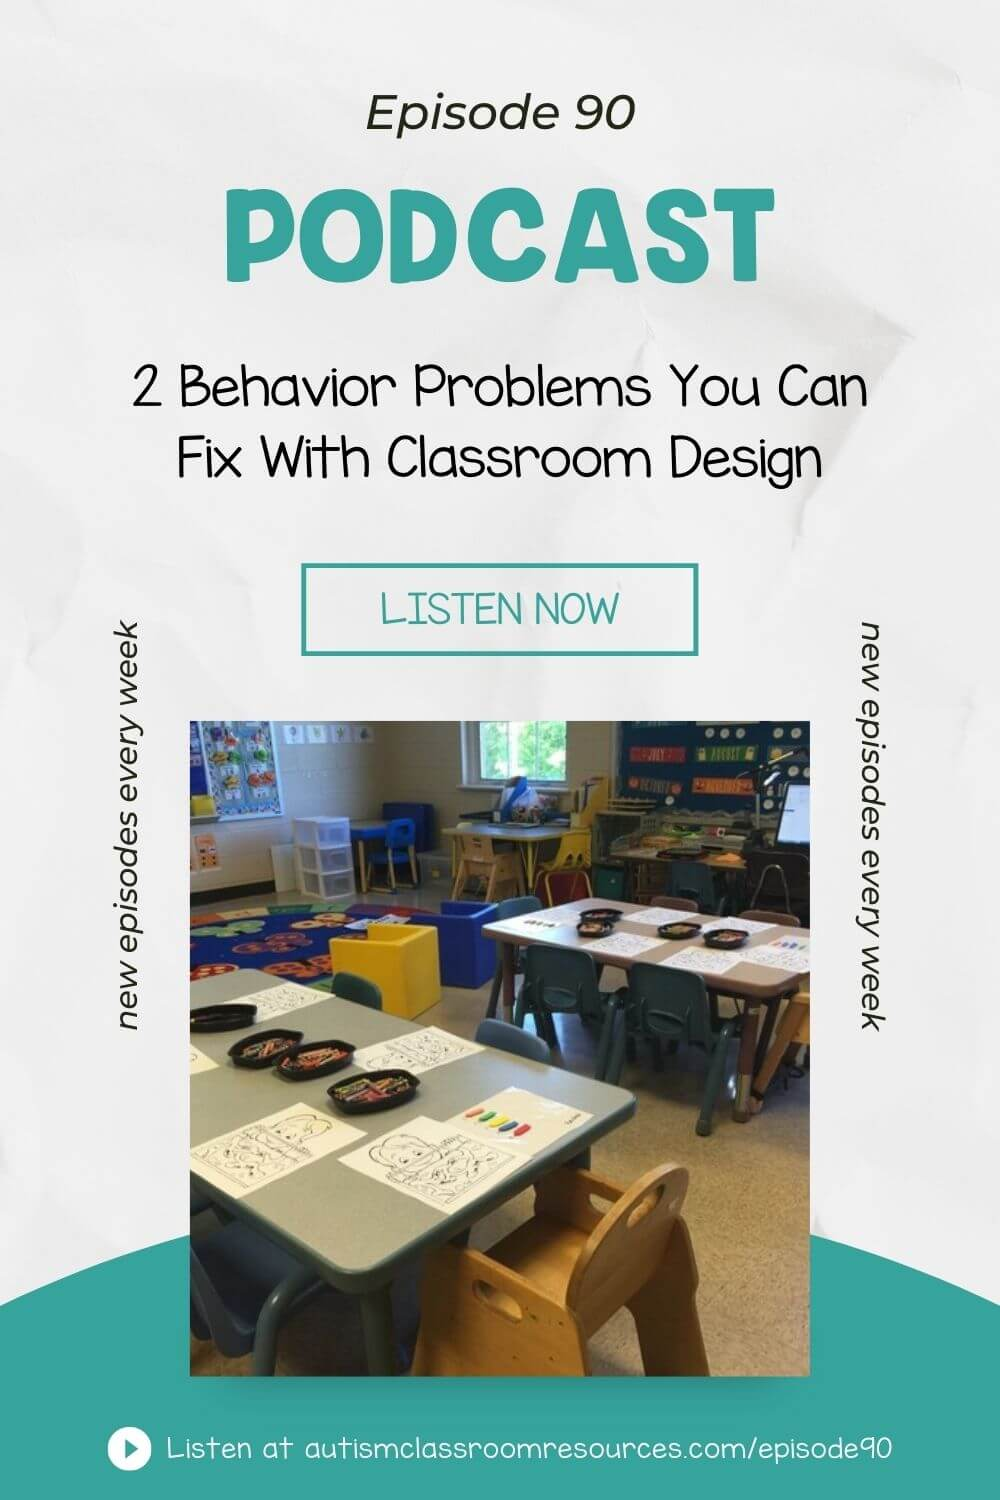 2 Behavior Problems You Can Fix With Classroom Design=